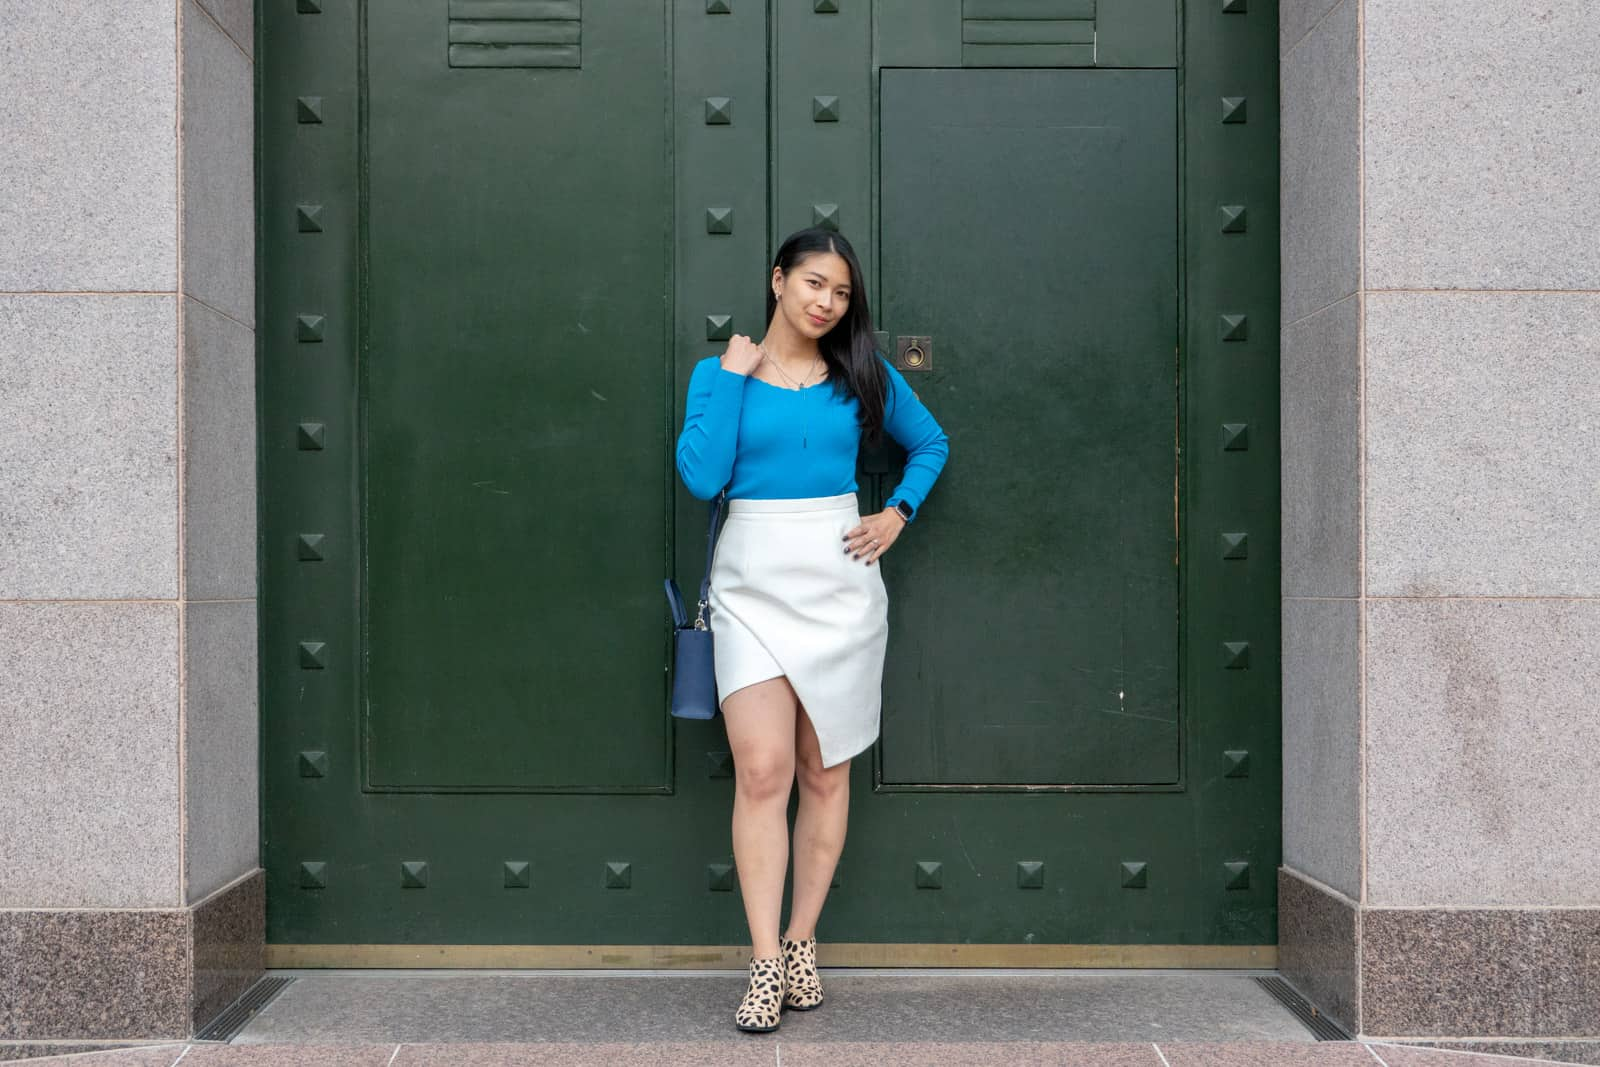 A woman standing in front of a very large dark green set of doors. She has short dark hair and is wearing a bright light blue long-sleeved top, a white wrap skirt, and shoes with animal print. She is carrying a small navy handbag on her shoulder and has a hand on her hip.